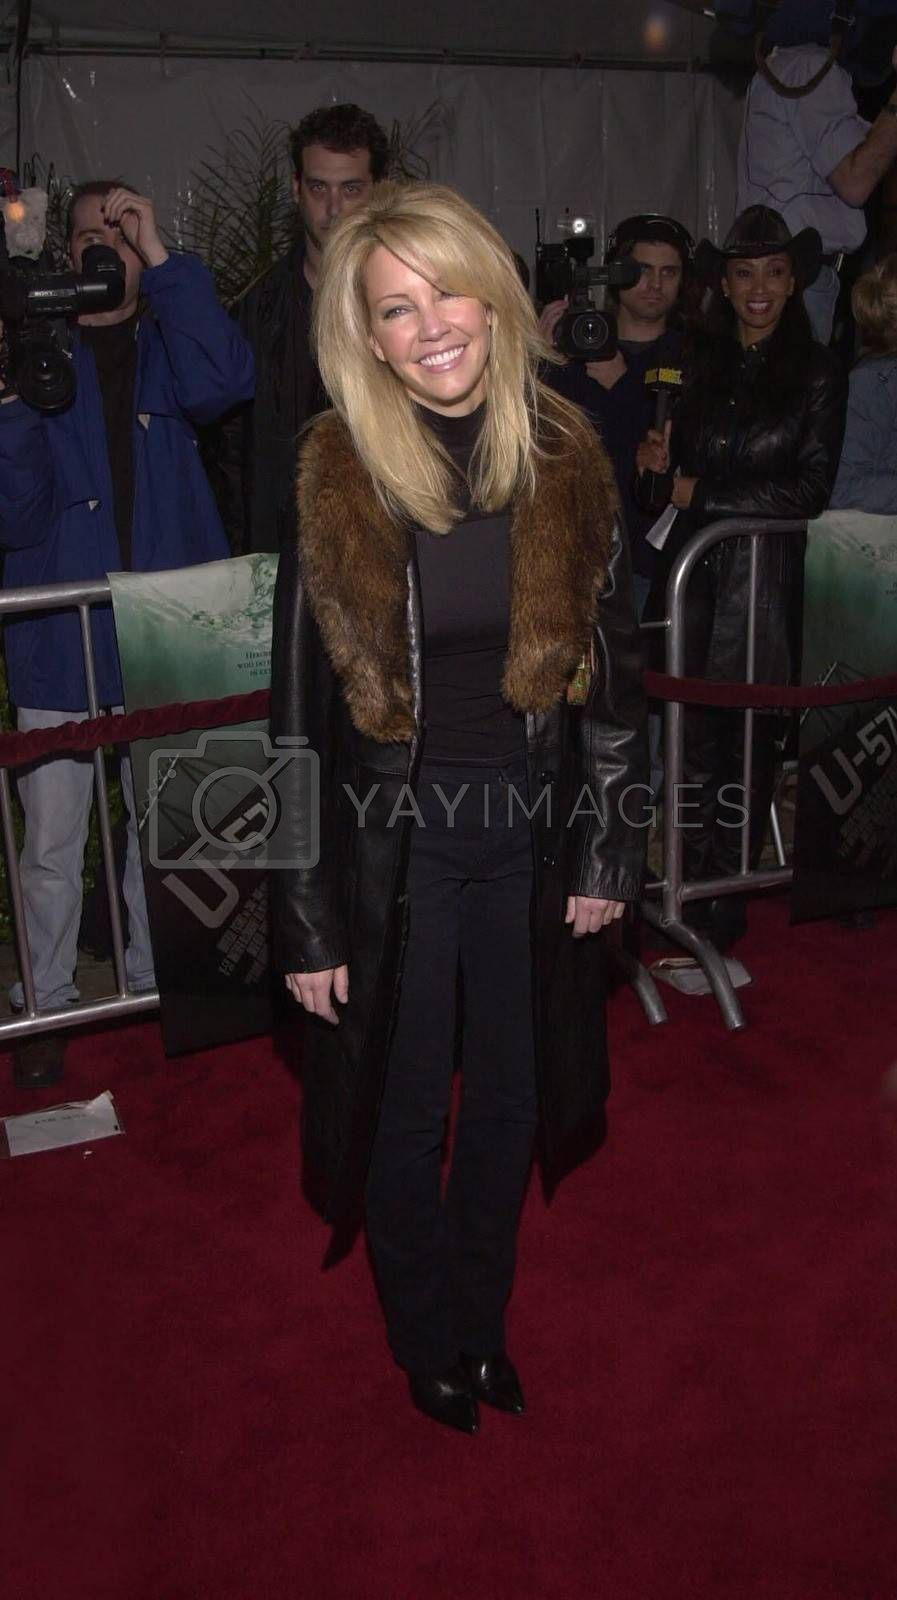 """Heather Locklear at the premiere of Universal's """"U-571"""" in Westwood, 04-17-00"""